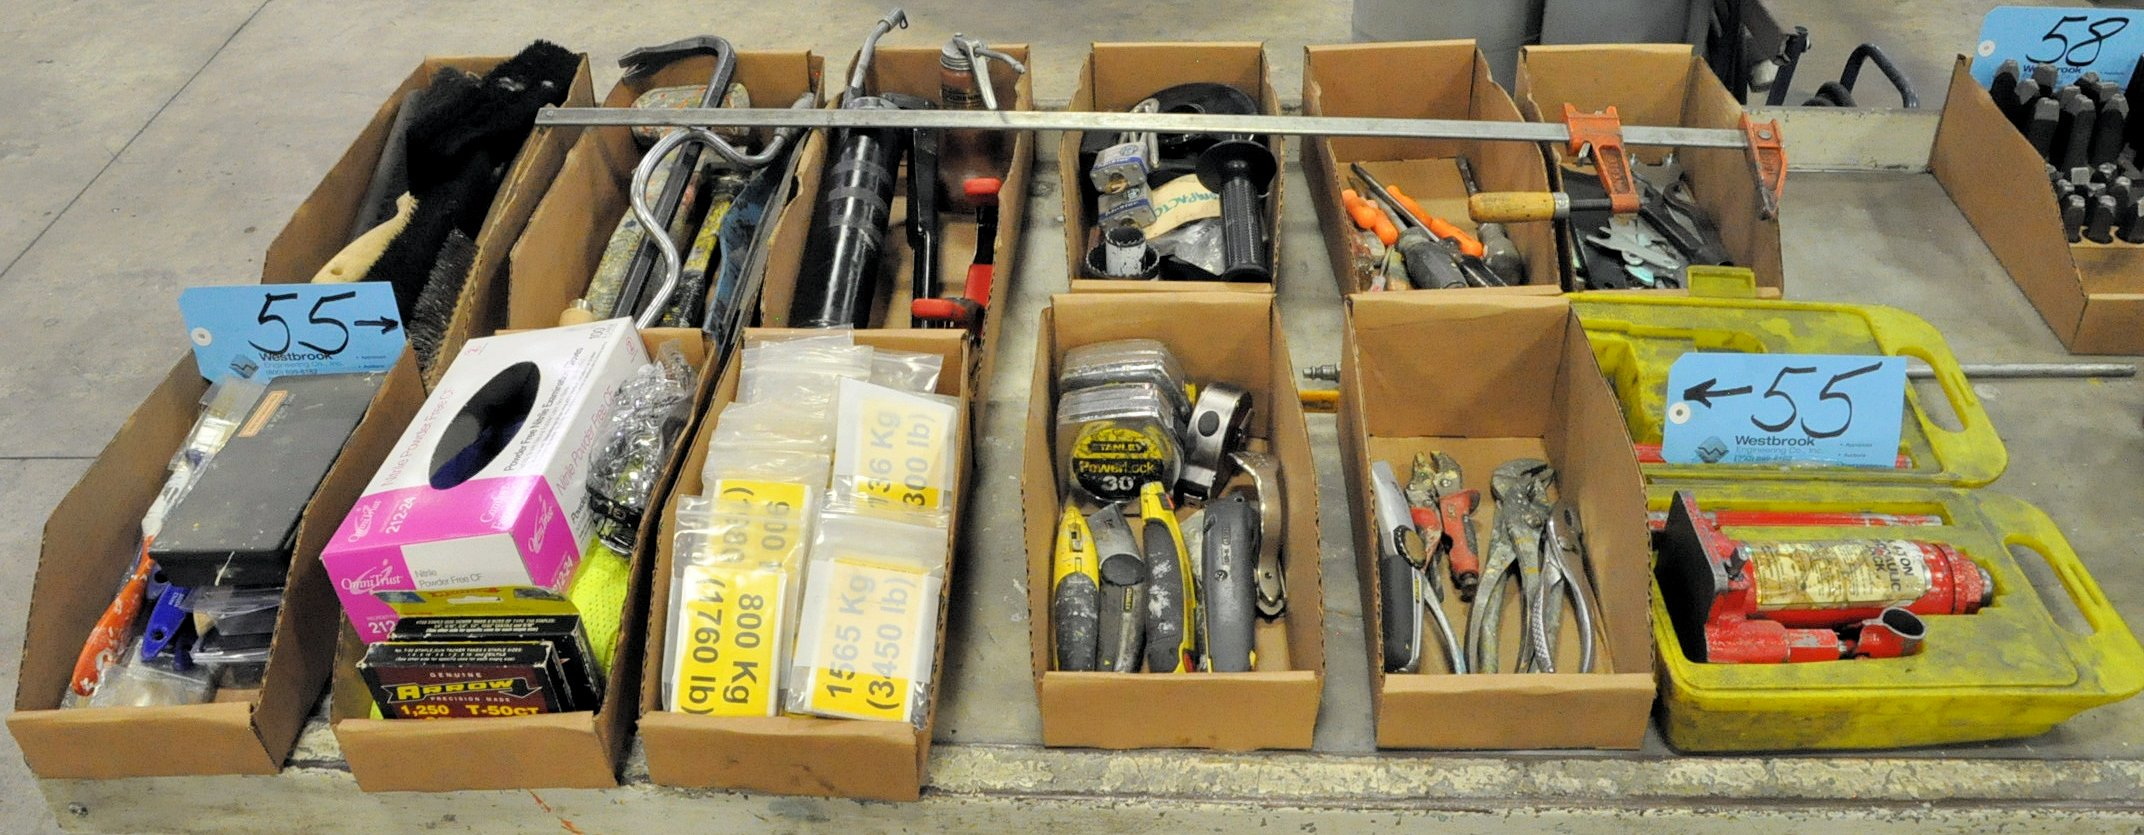 Lot-Asst'd Hand Tools in (11) Boxes with (1) 4-Ton Bottle Jack